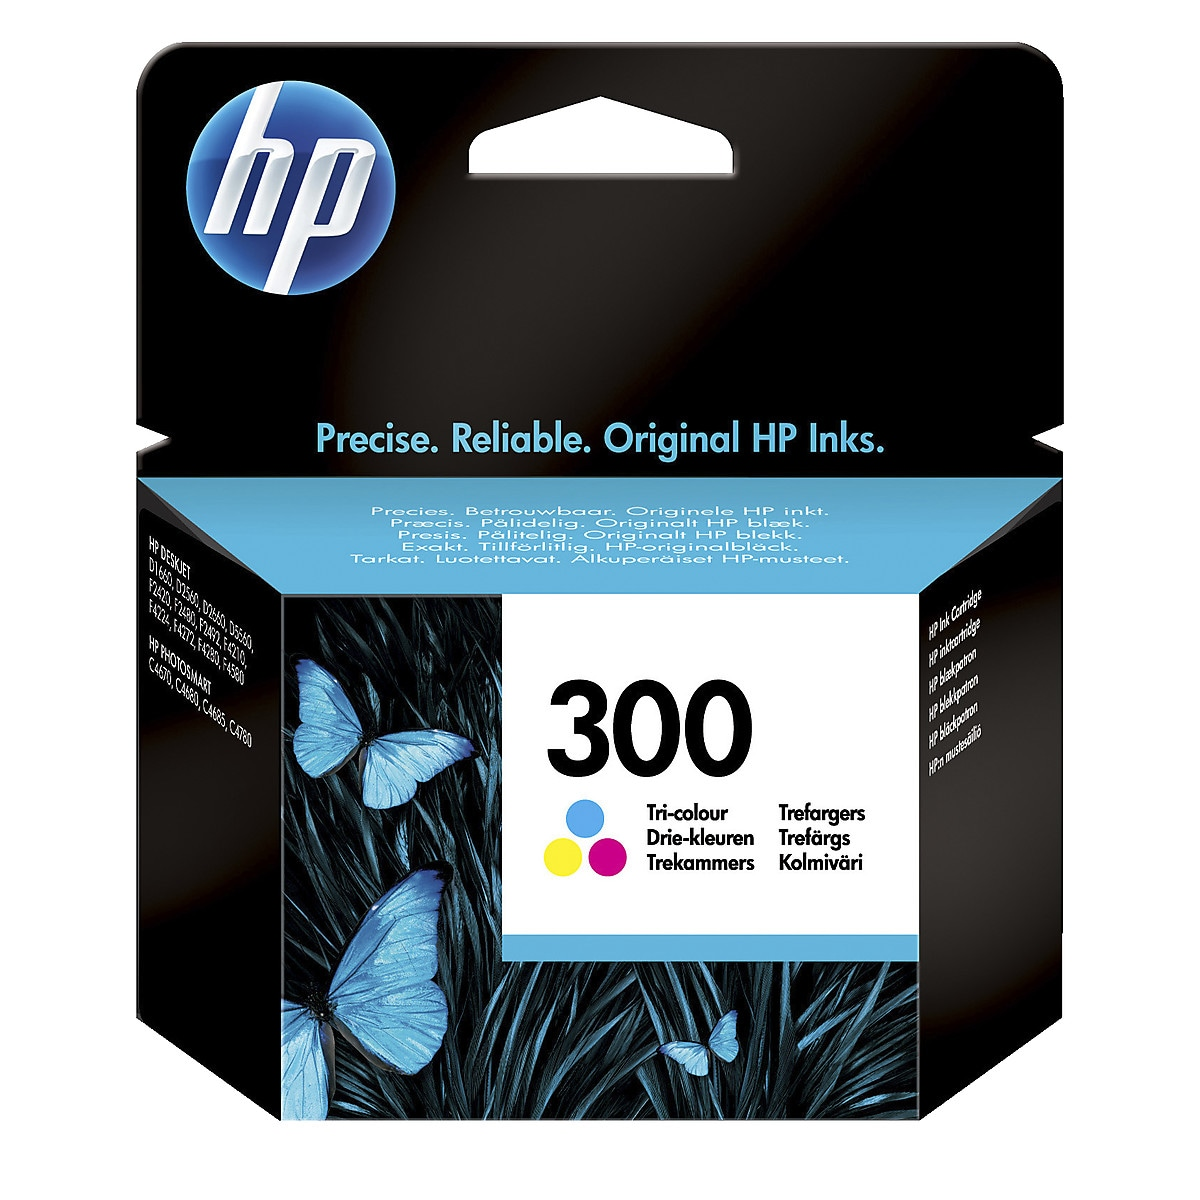 HP 300 Ink Cartridge